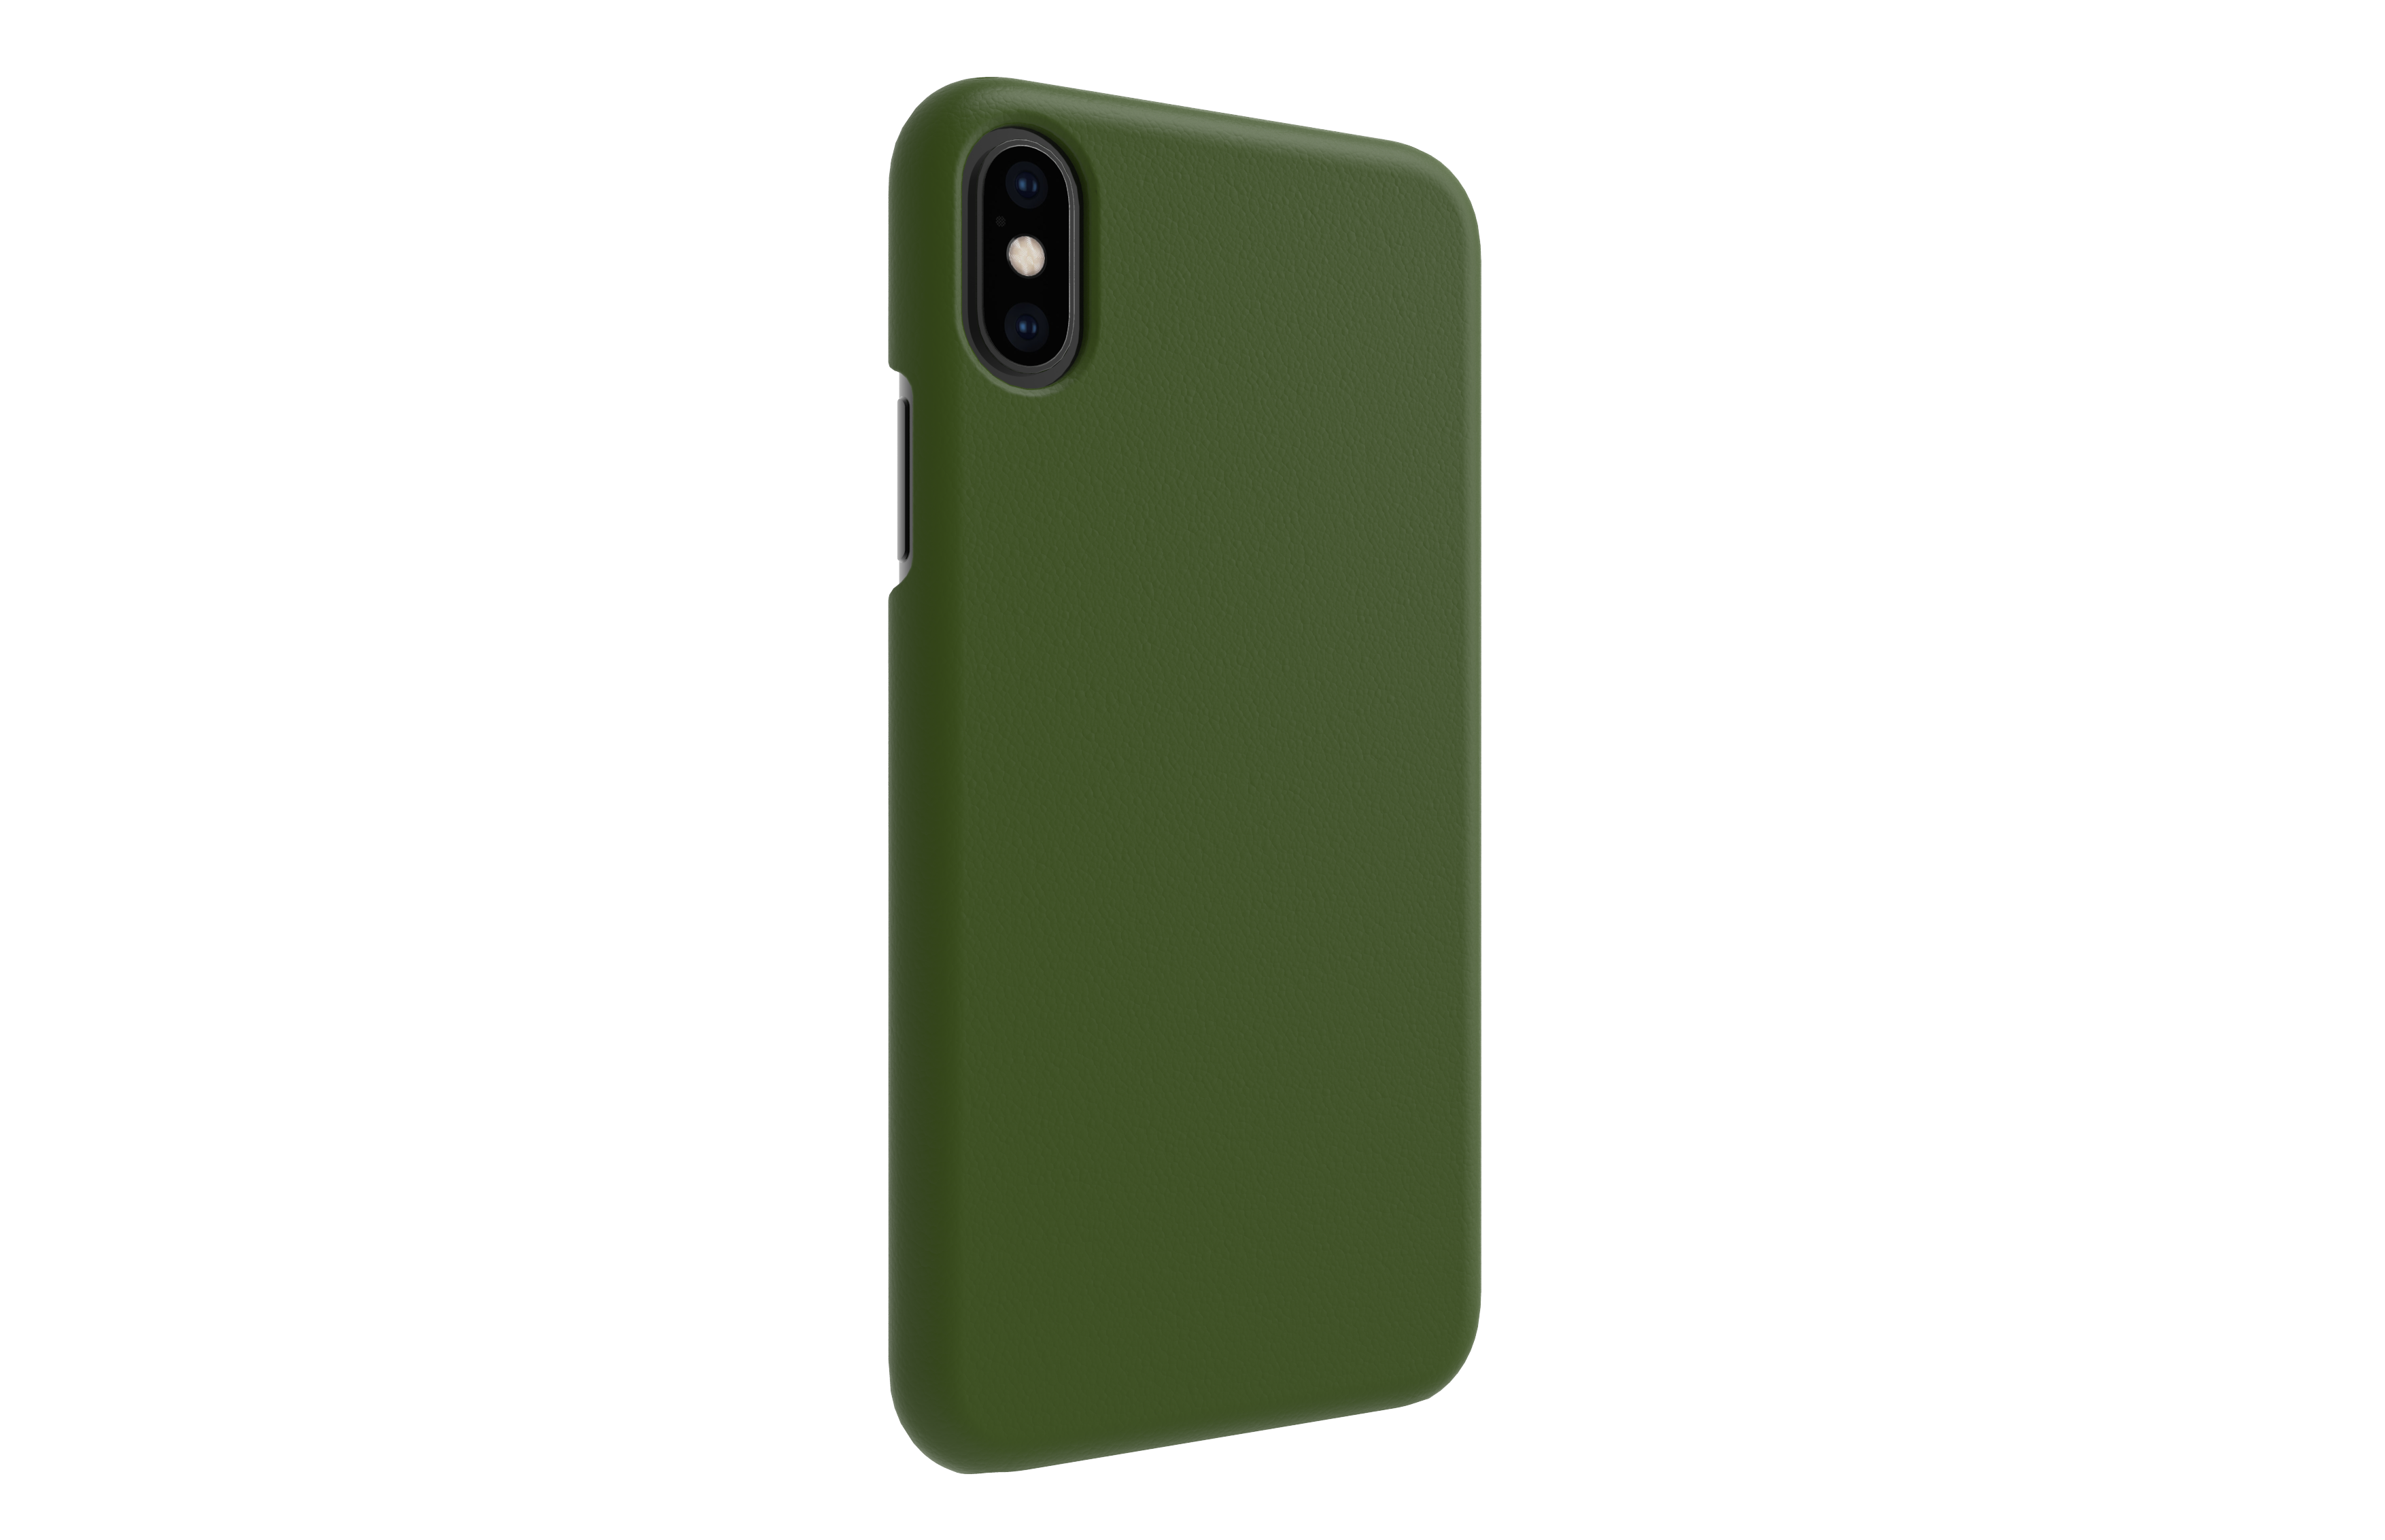 iphoneX green-3